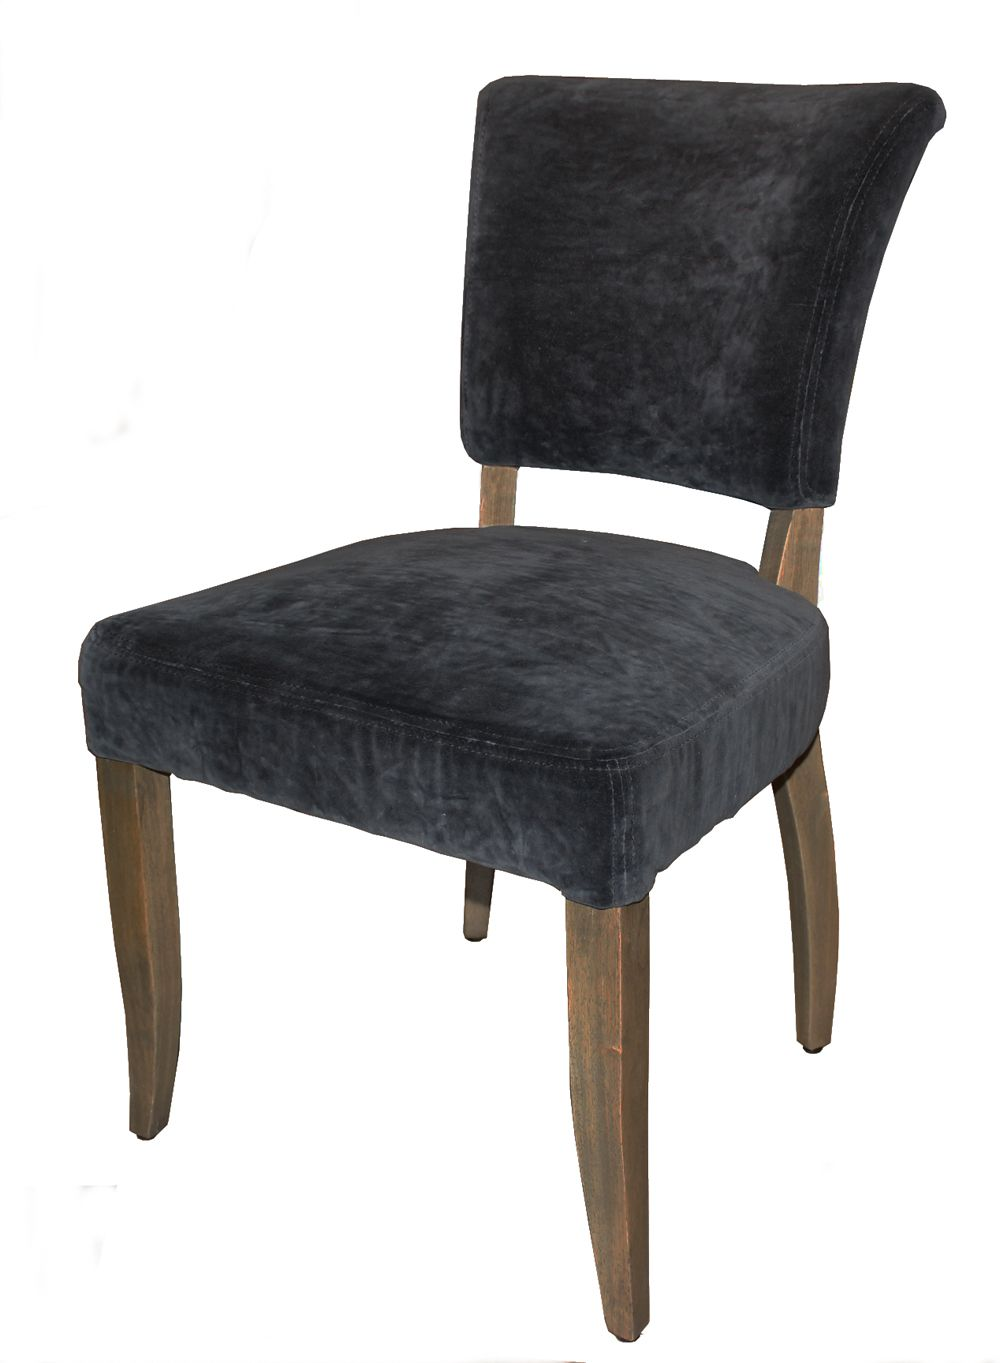 Astonishing Bonneville Dining Chair In Vintage Graphite Interiors Ii Pabps2019 Chair Design Images Pabps2019Com